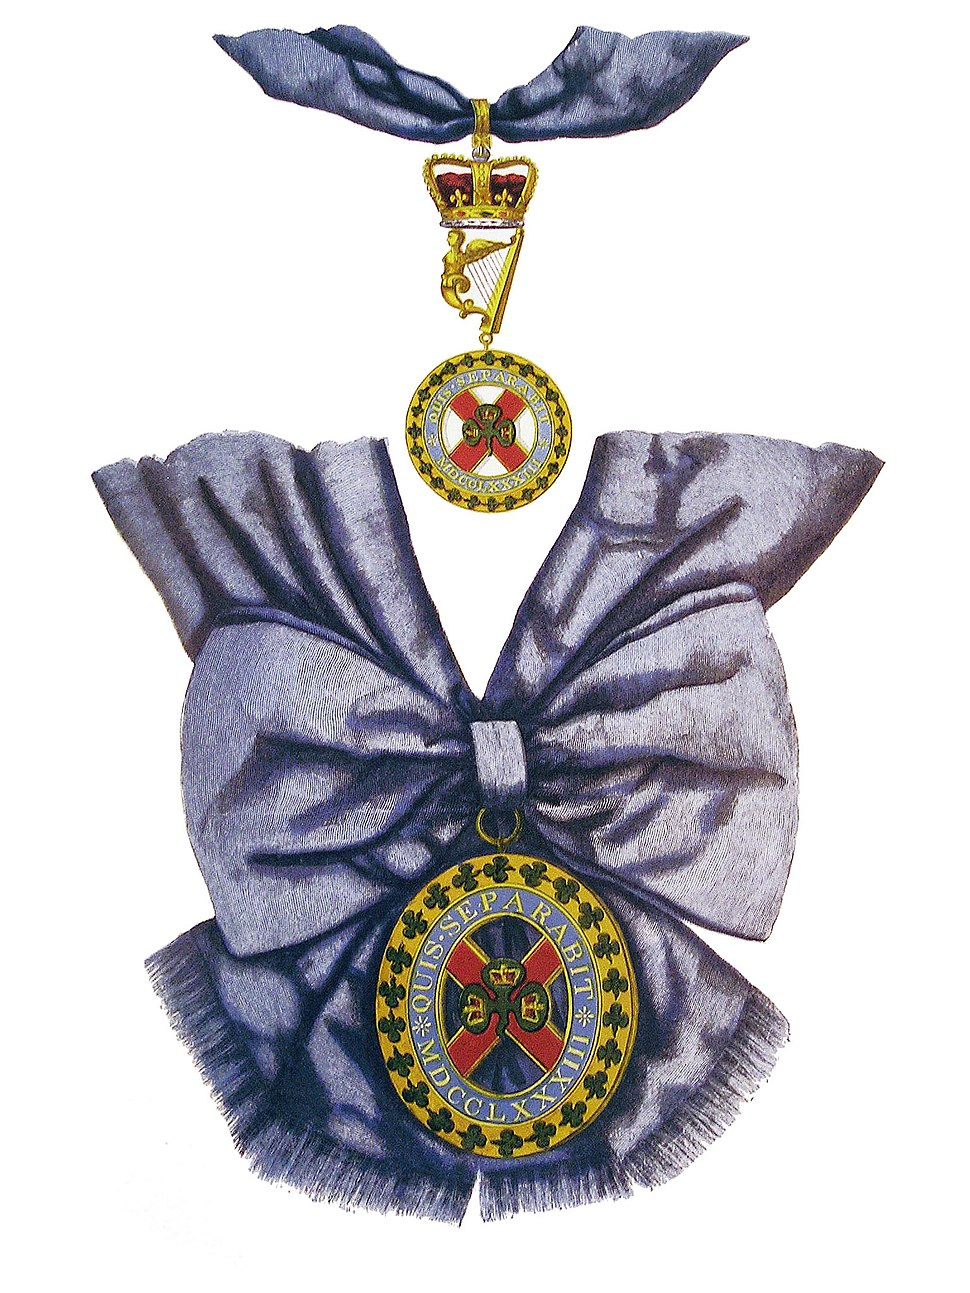 Badges of the Order of St Patrick